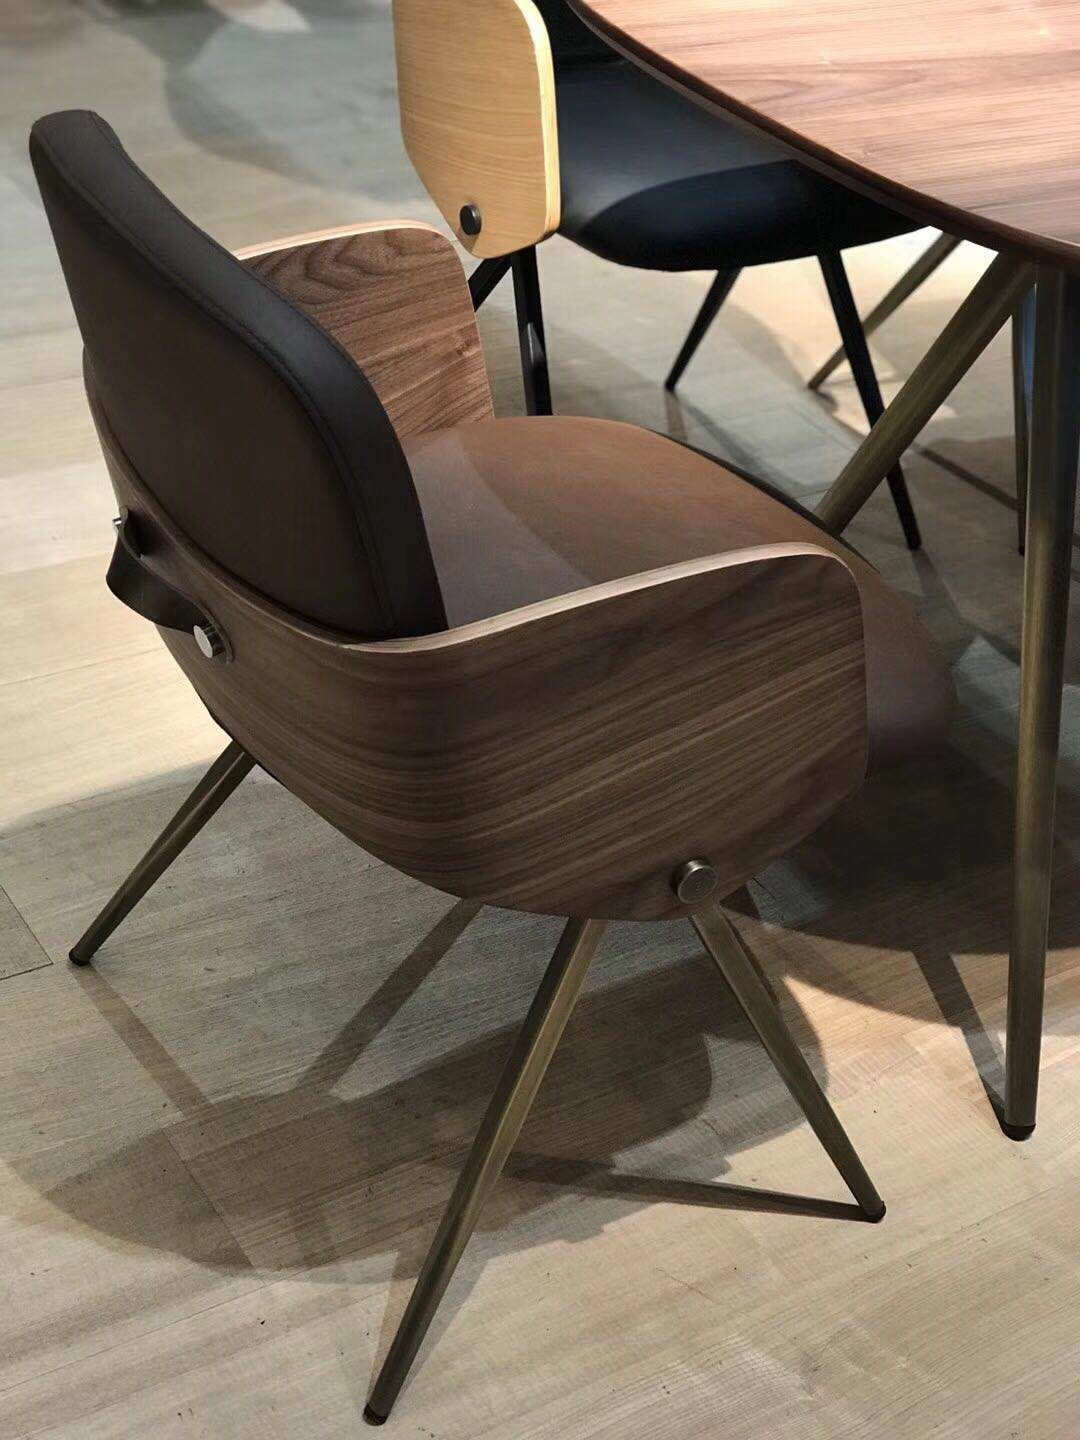 Chair dinning chairs modern dining chairs modern furniture furniture design eames